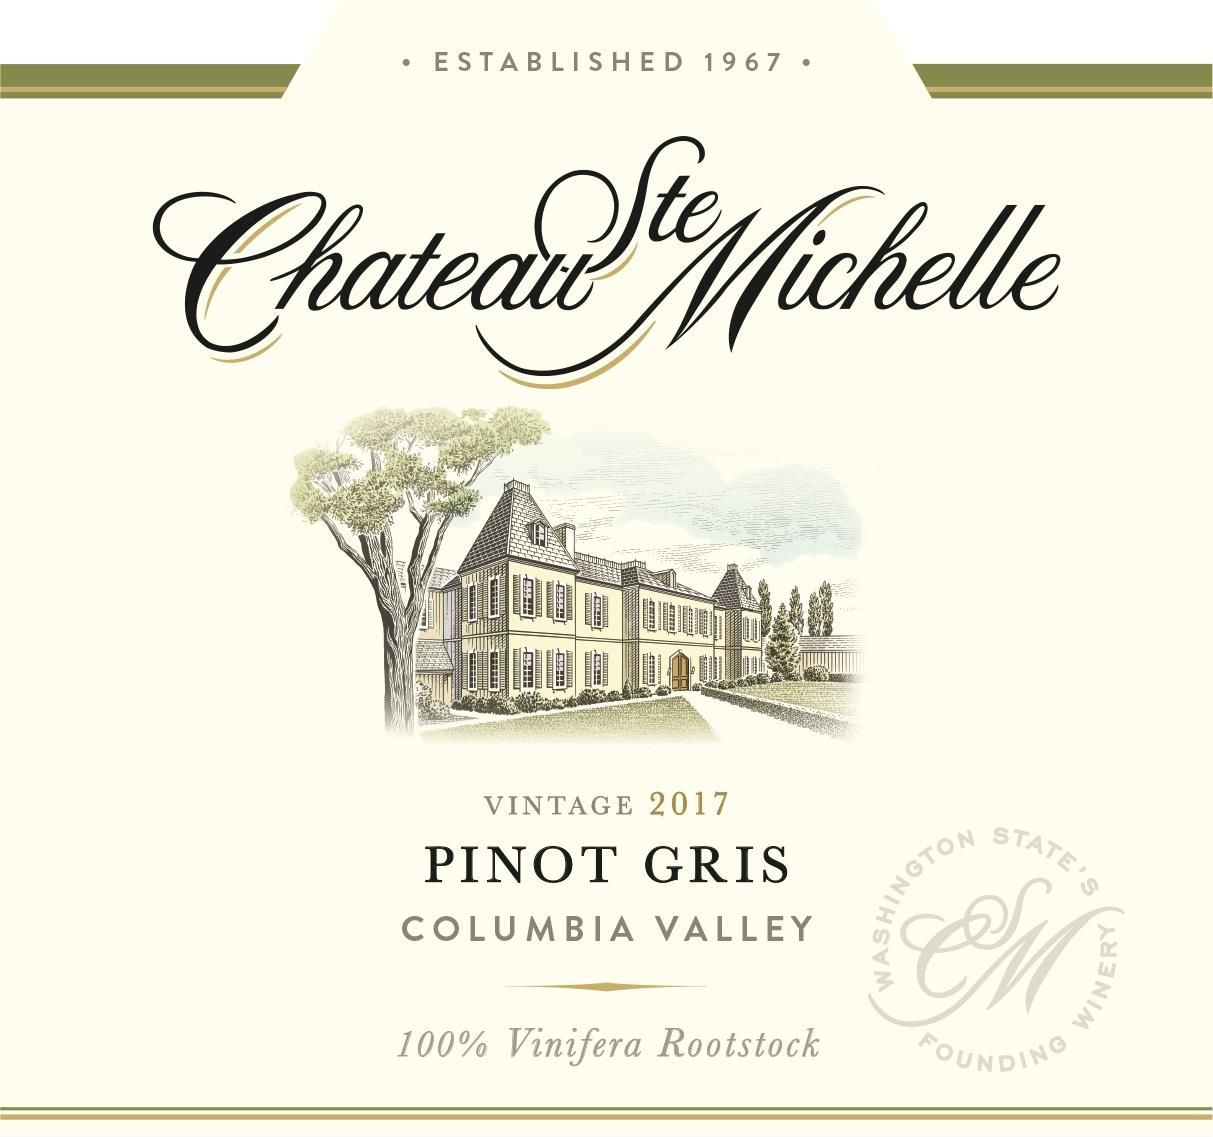 Chateau Ste. Michelle Pinot Gris 2017 Front Label